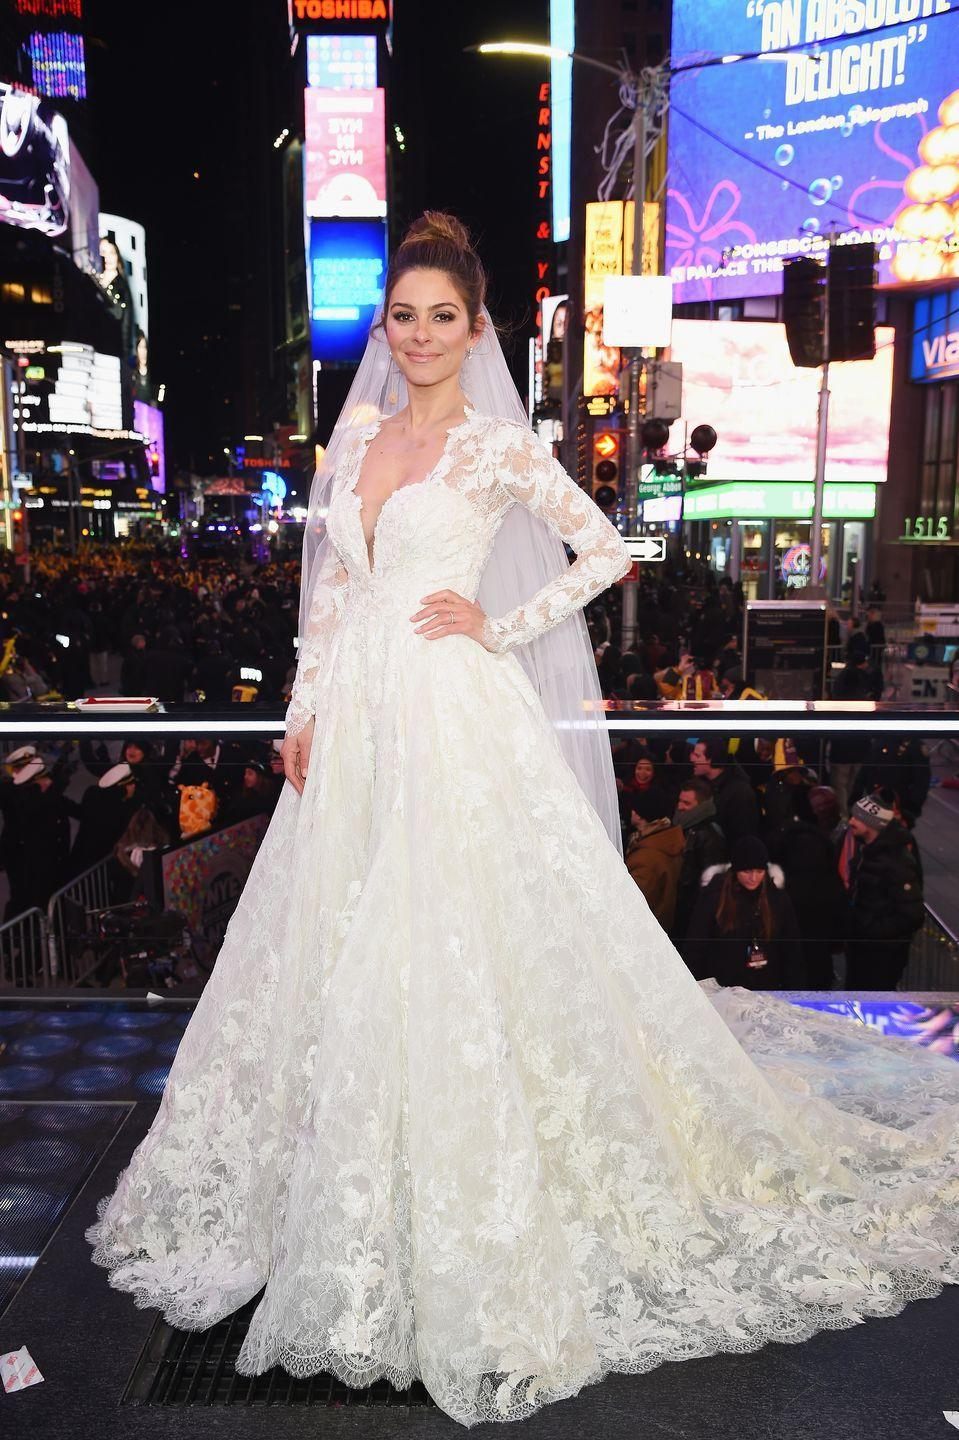 <p>Maria Menounos and her longtime boyfriend Keven Undergaro got engaged back in 2016. They decided to marry in the middle of Times Square on New Year's Eve in 2017 — and put it on live television, too. Maria wore a Pronovias gown <em>with</em> sleeves in an attempt to cover up as much skin as possible given the cold temps.</p>